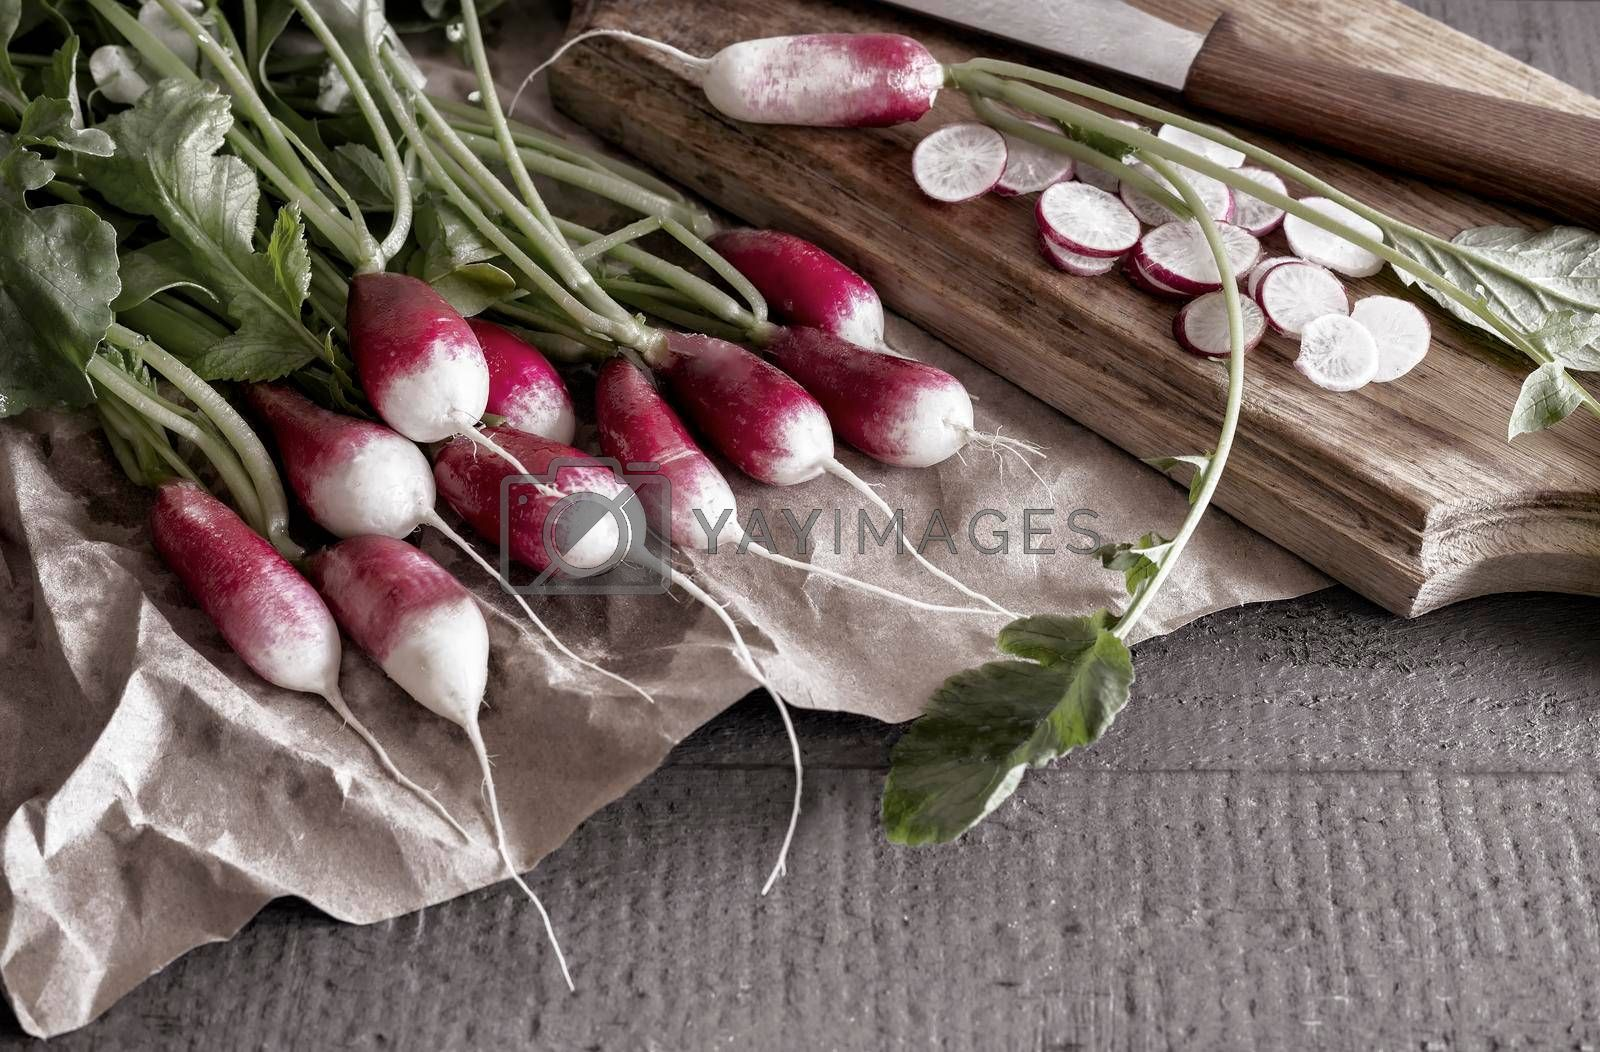 Royalty free image of Young radish with green leaves on the table. by georgina198